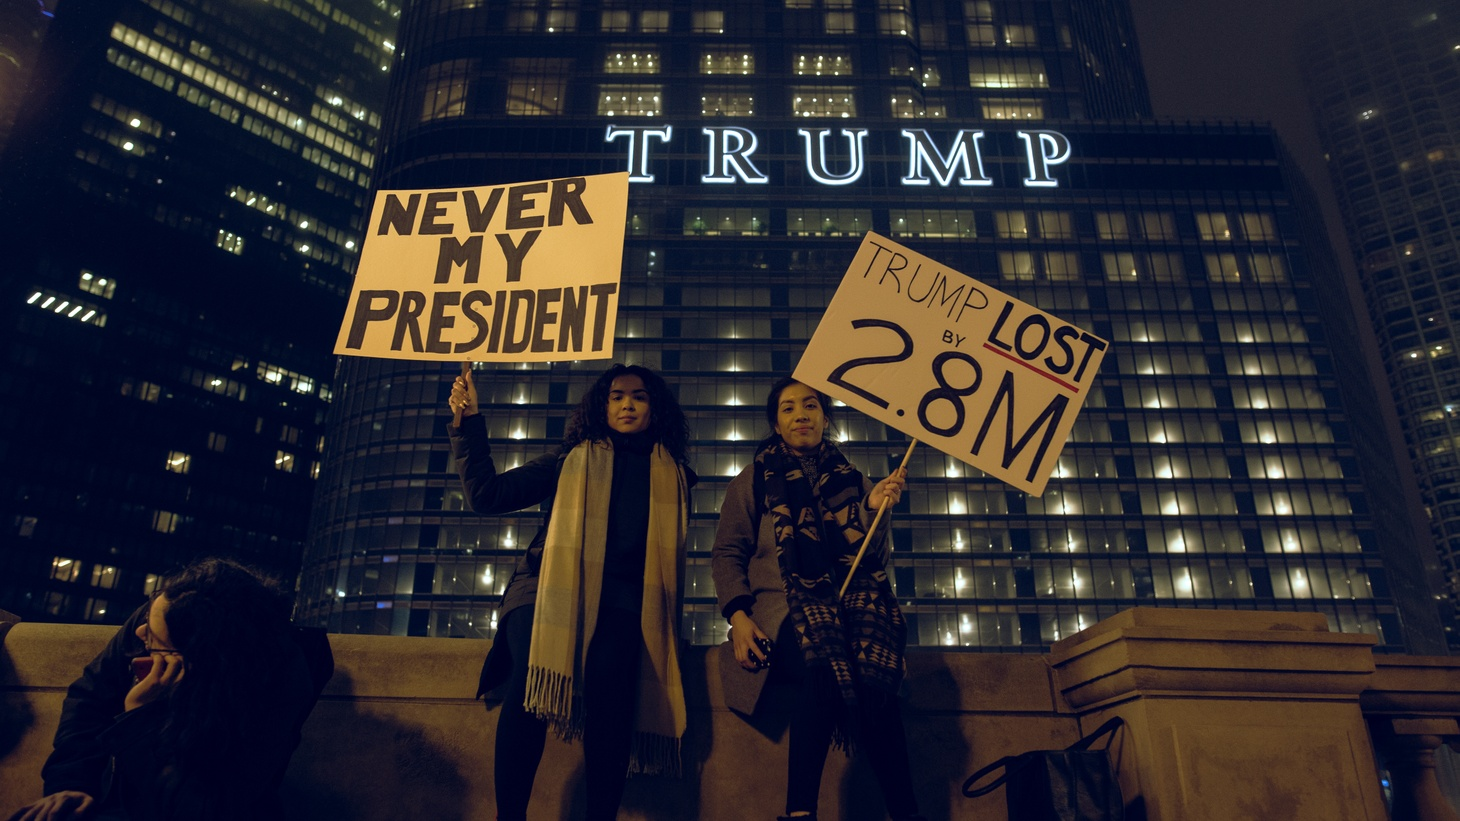 Two women hold signs at an anti-Trump protest near Trump Tower in Chicago.